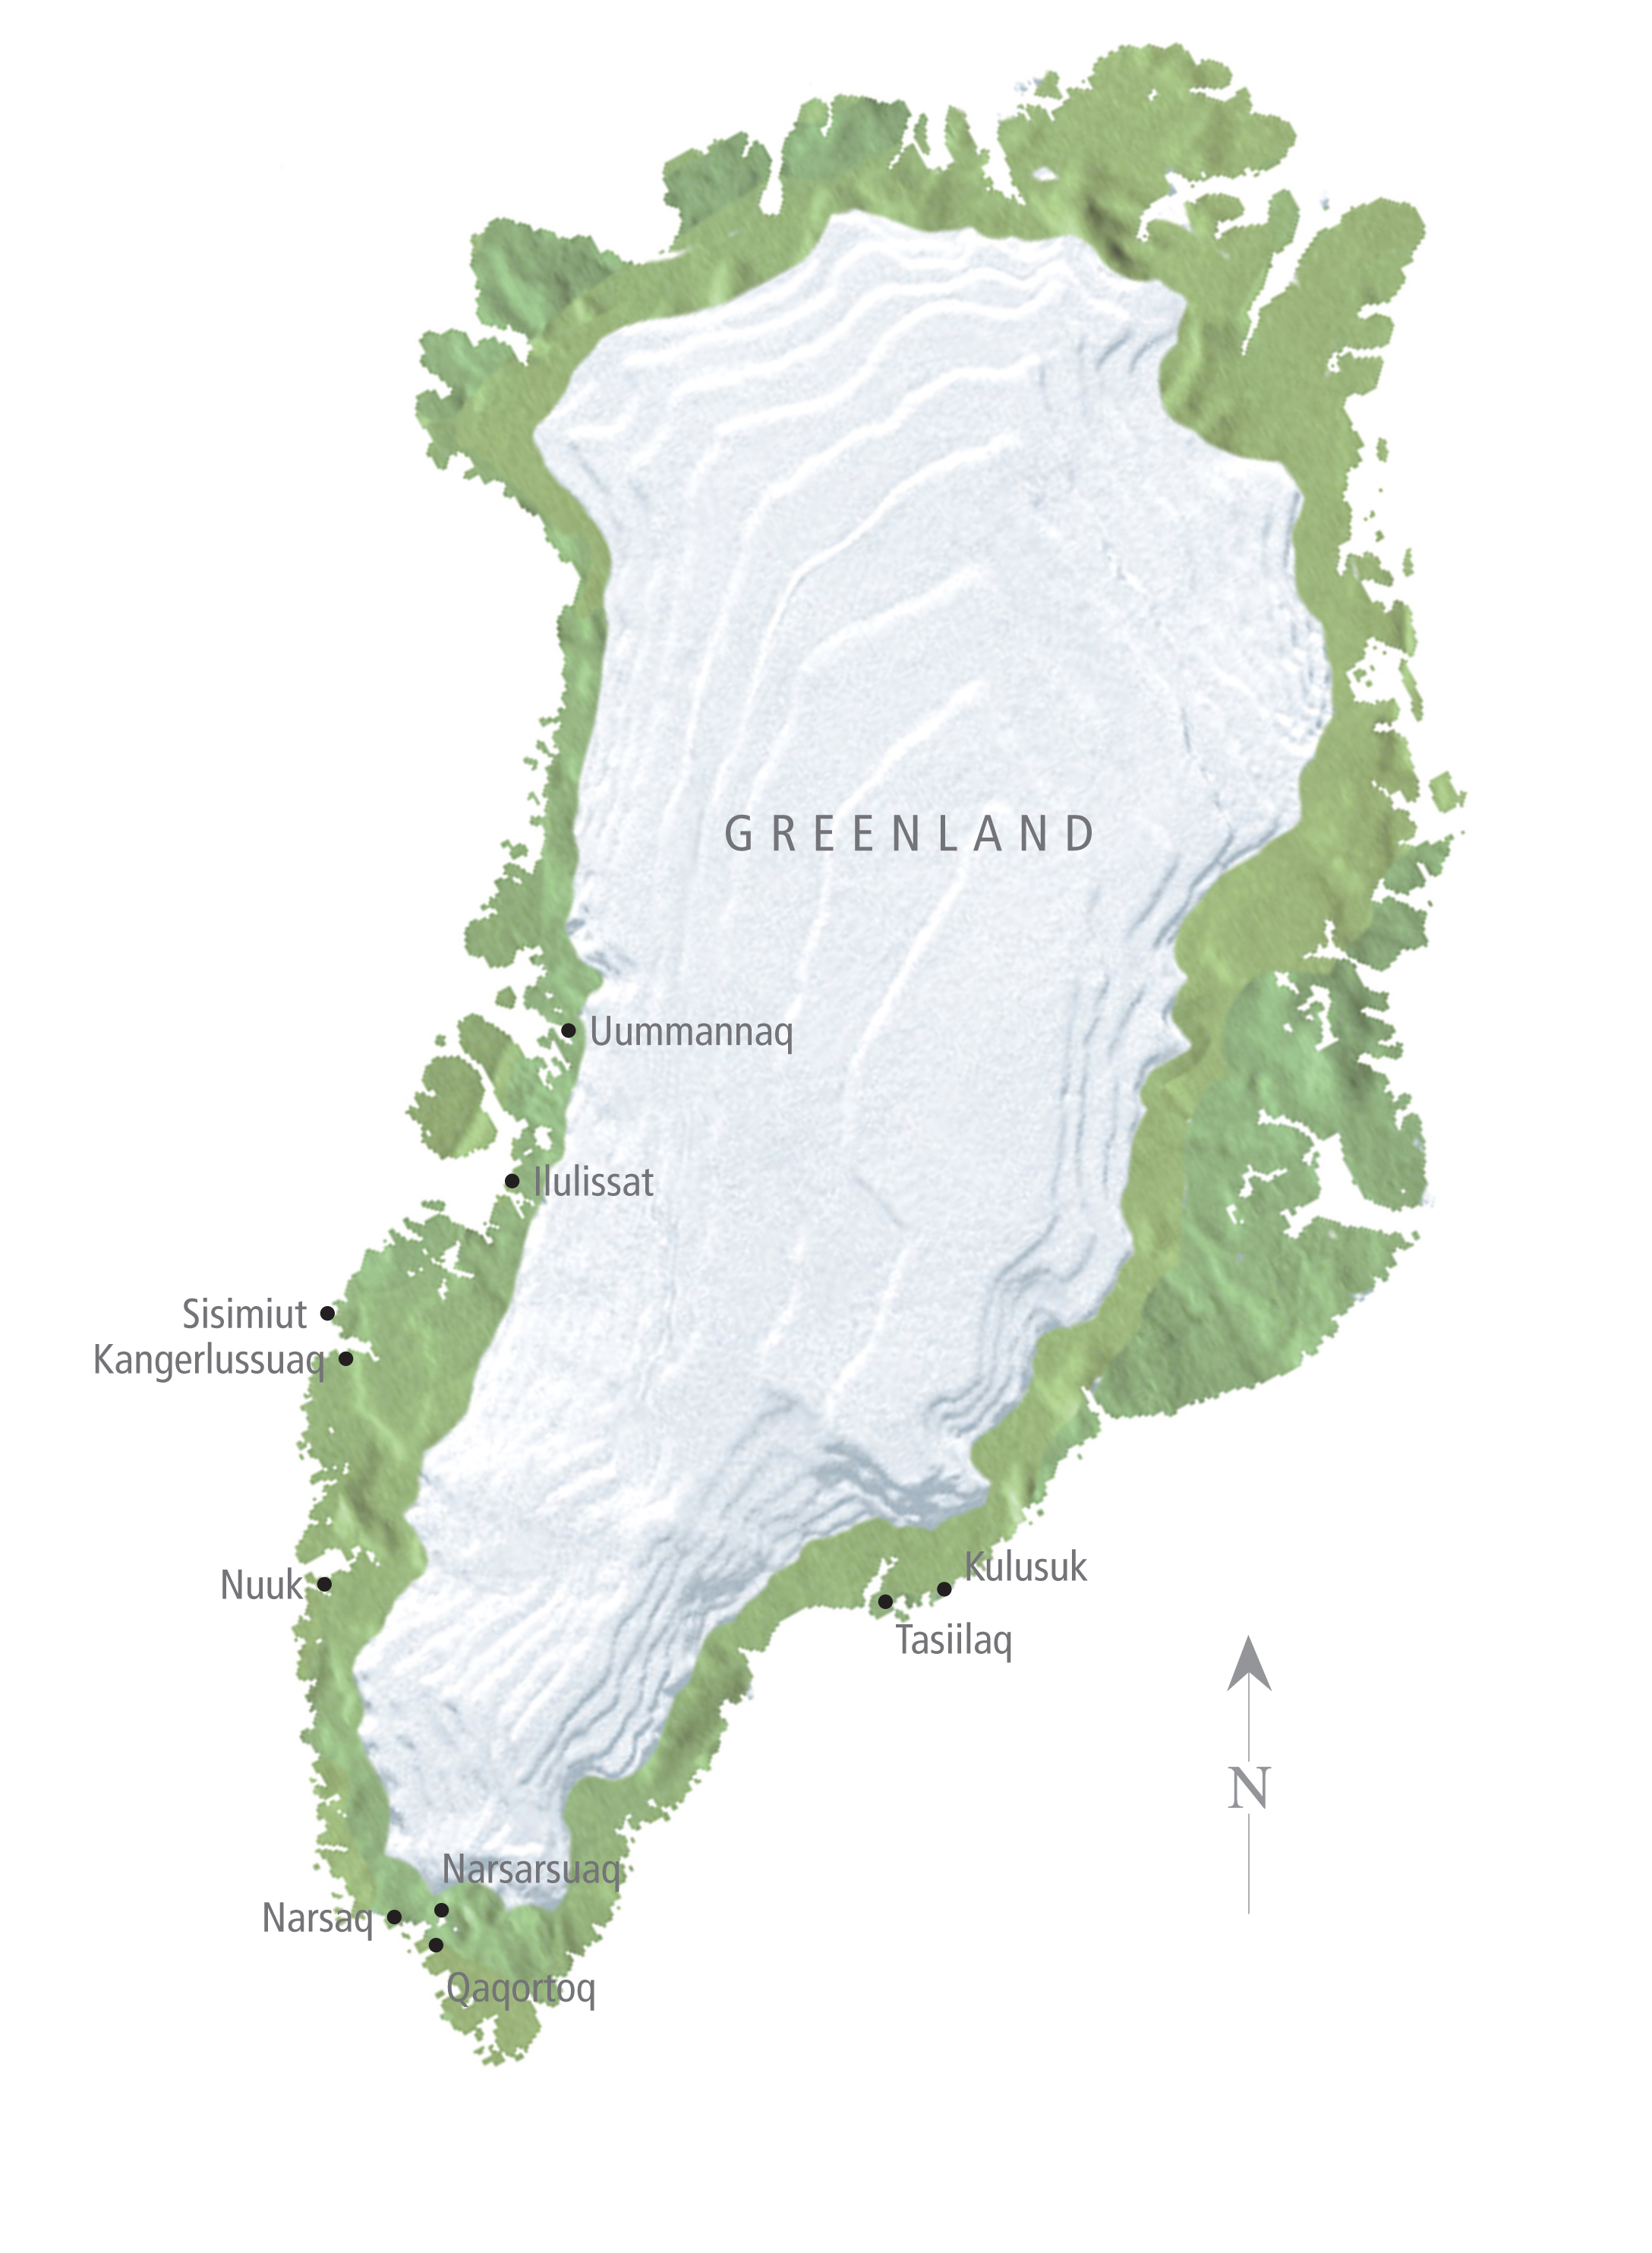 Maps of Greenland.